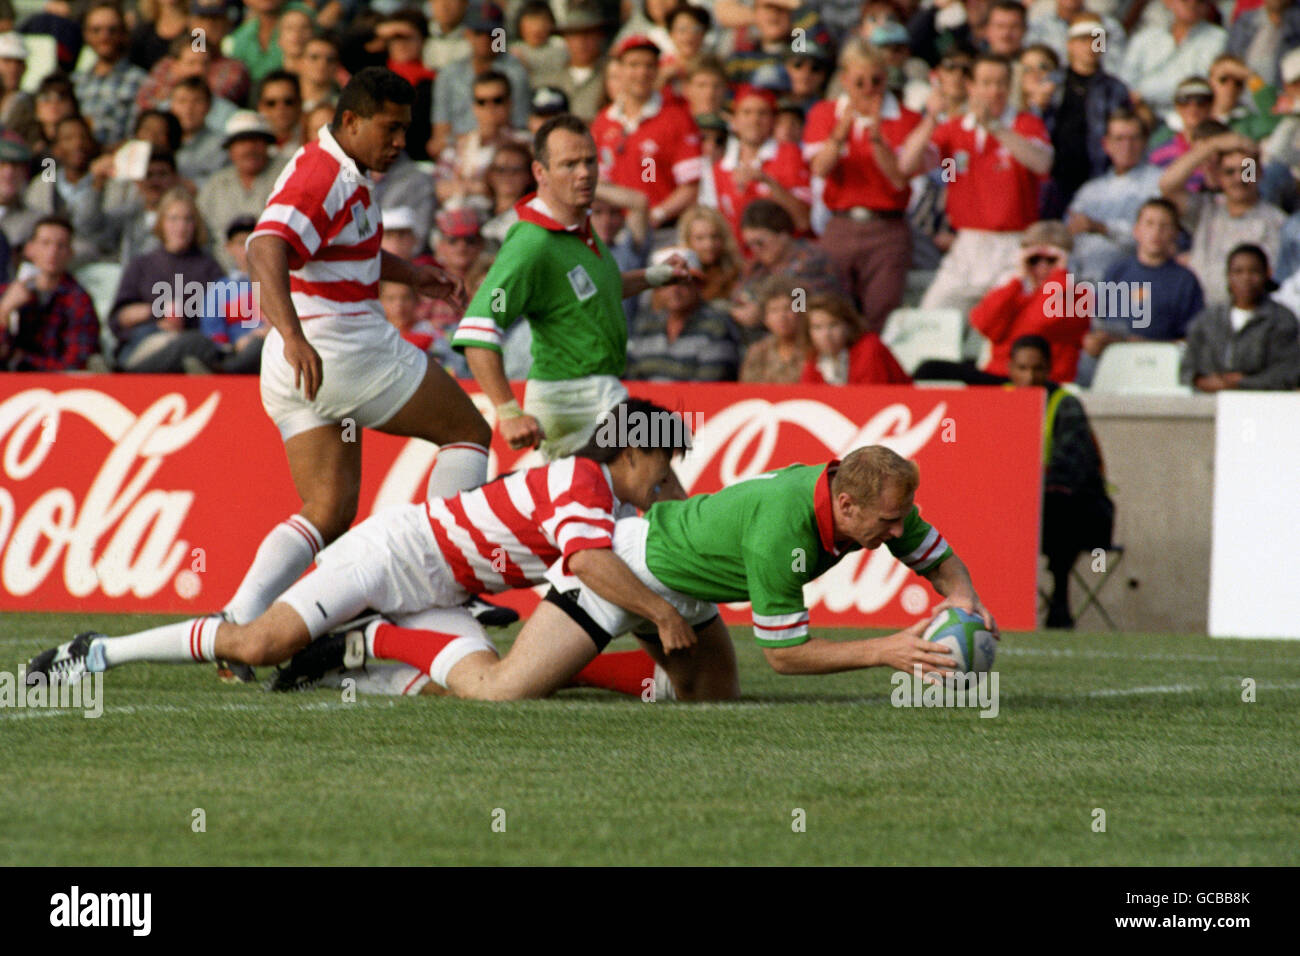 Rugby Union - World Cup 1995 - Pool C - Wales v Japan - Free State Stadium, Bloemfontein - Stock Image